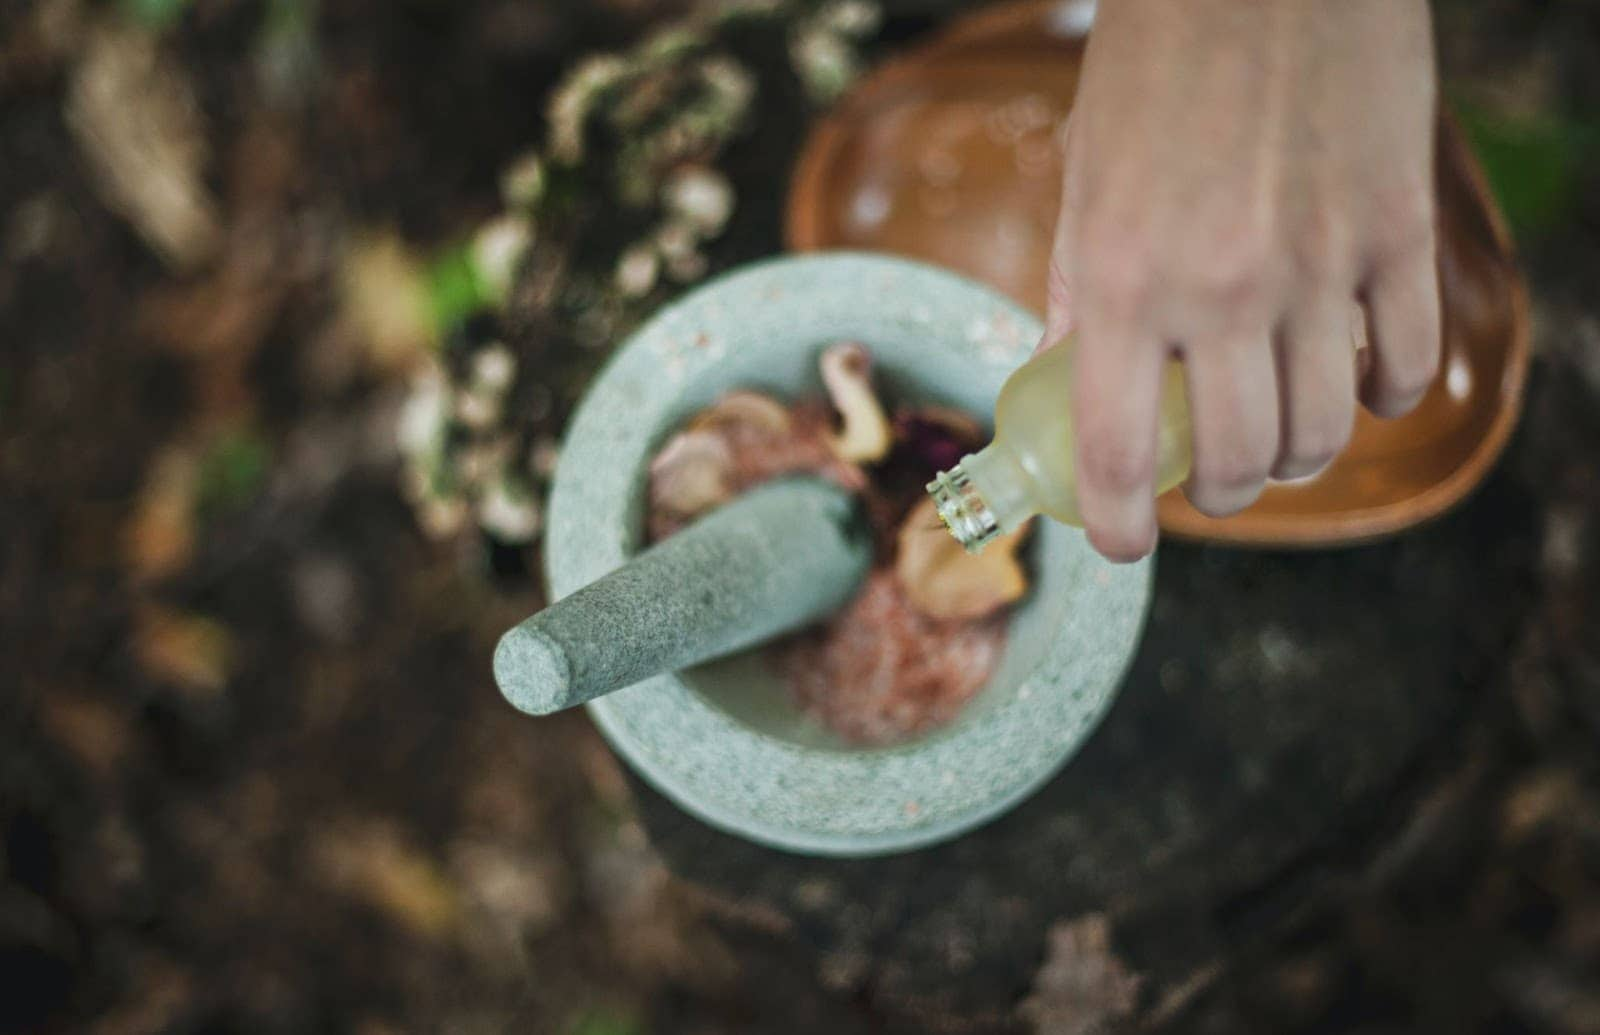 Essential Oil being poured into pestle and mortar